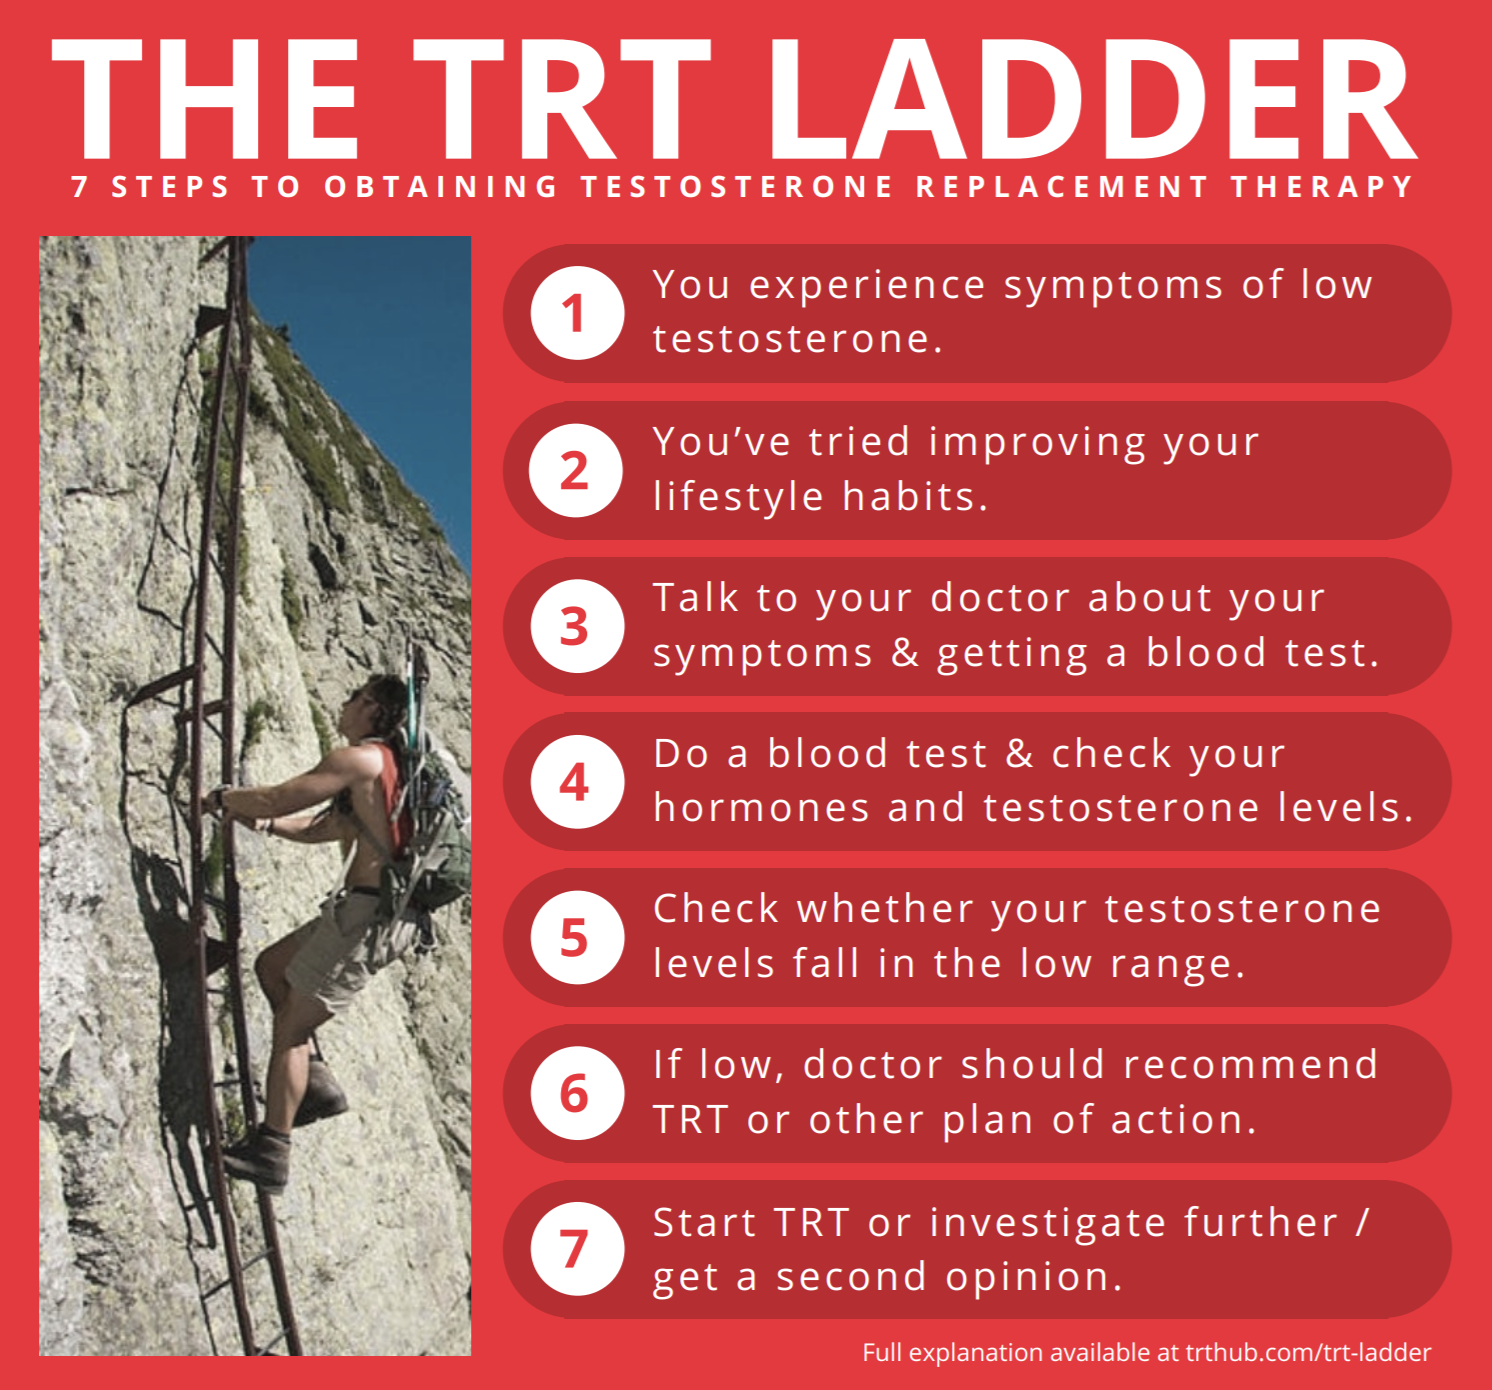 The TRT Ladder - 7 Steps To Obtaining Testosterone Replacement Therapy